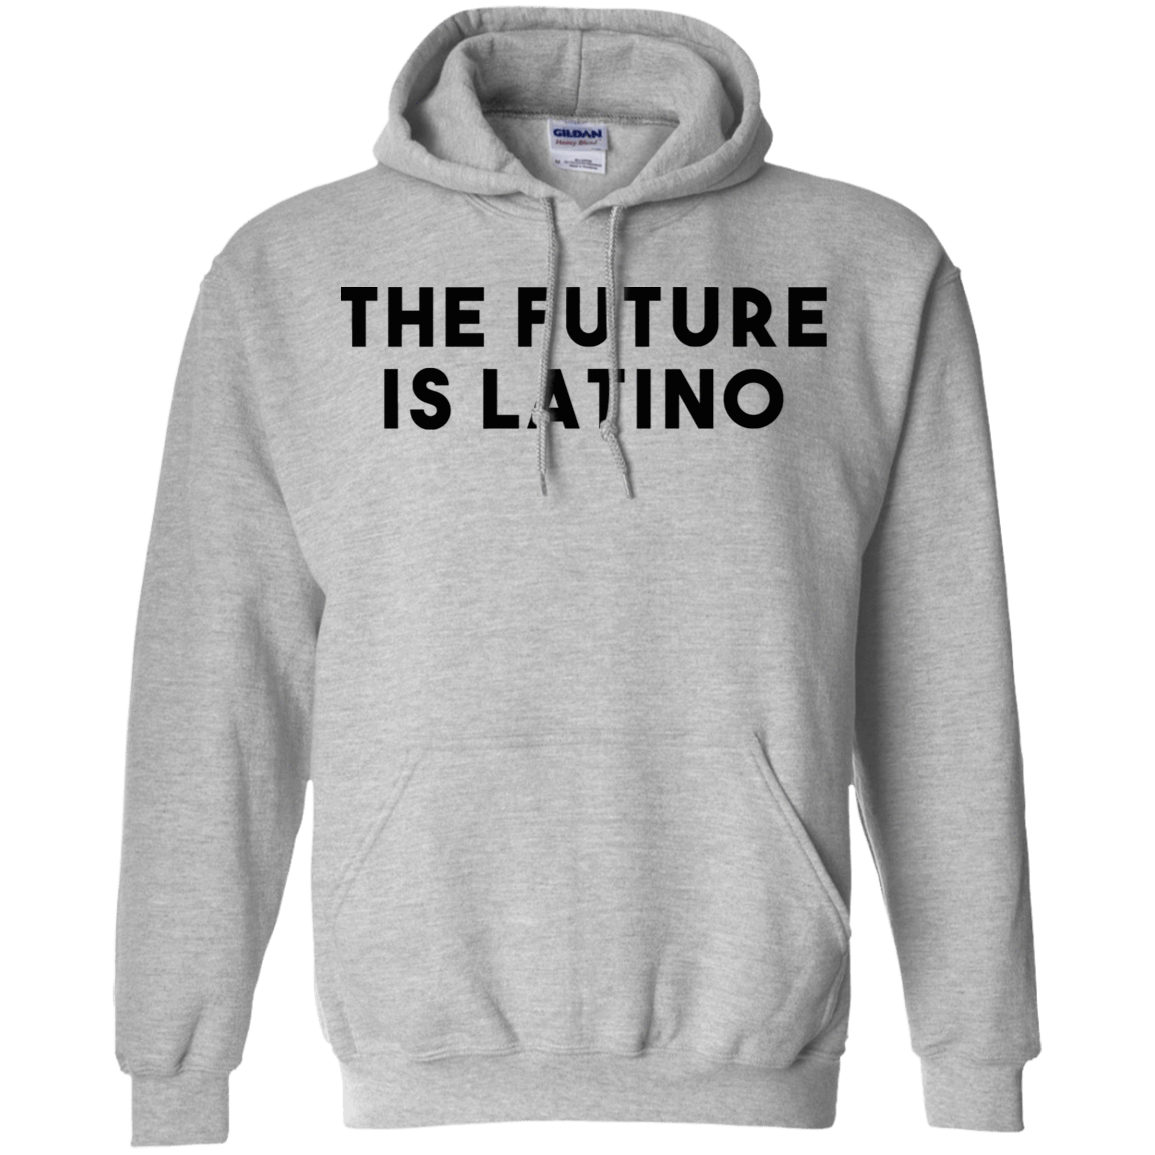 The Future Is Latino 541-4741-73057006-23111 - Tee Ript